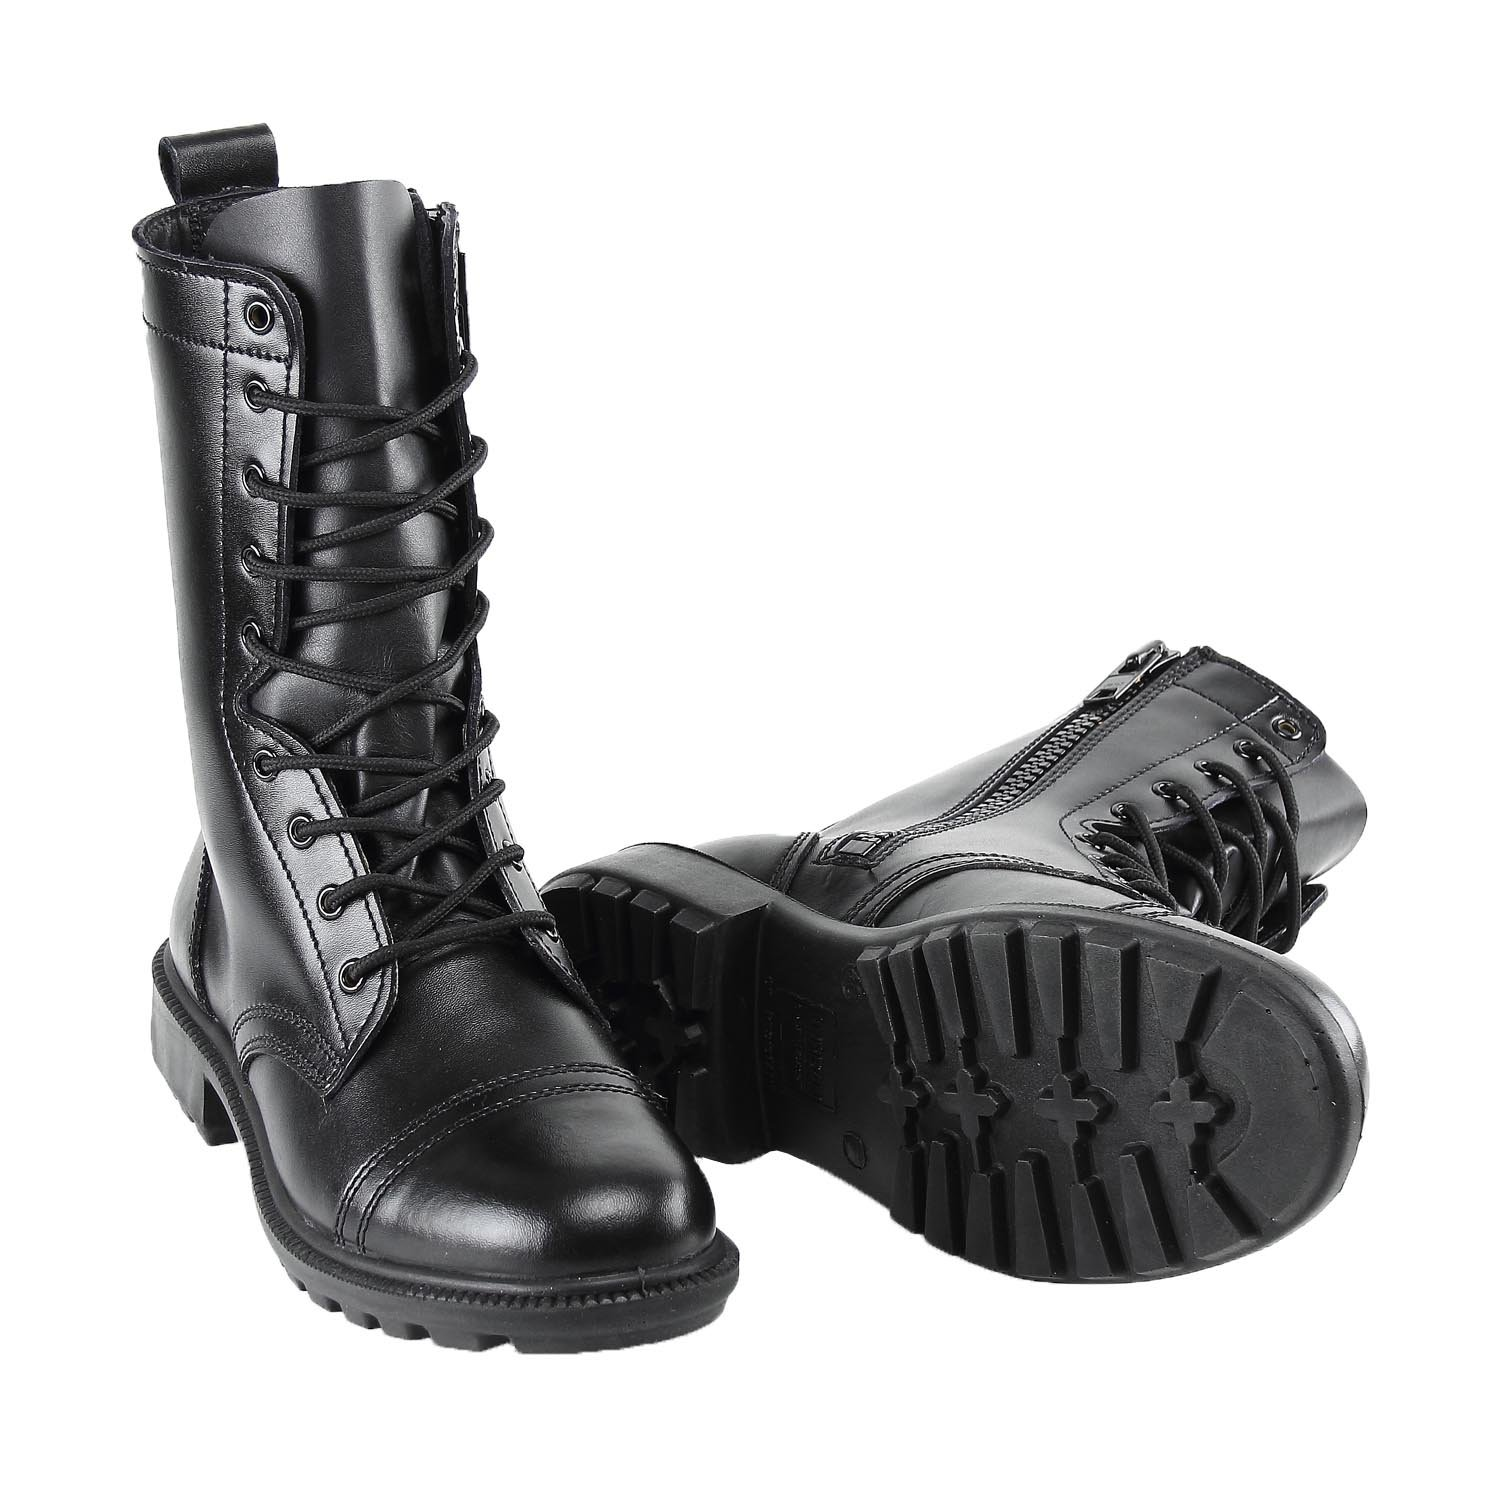 BURGAN 802 Combat Jump Boot (Unisex) - All Leather with Side Zip (46 EU)